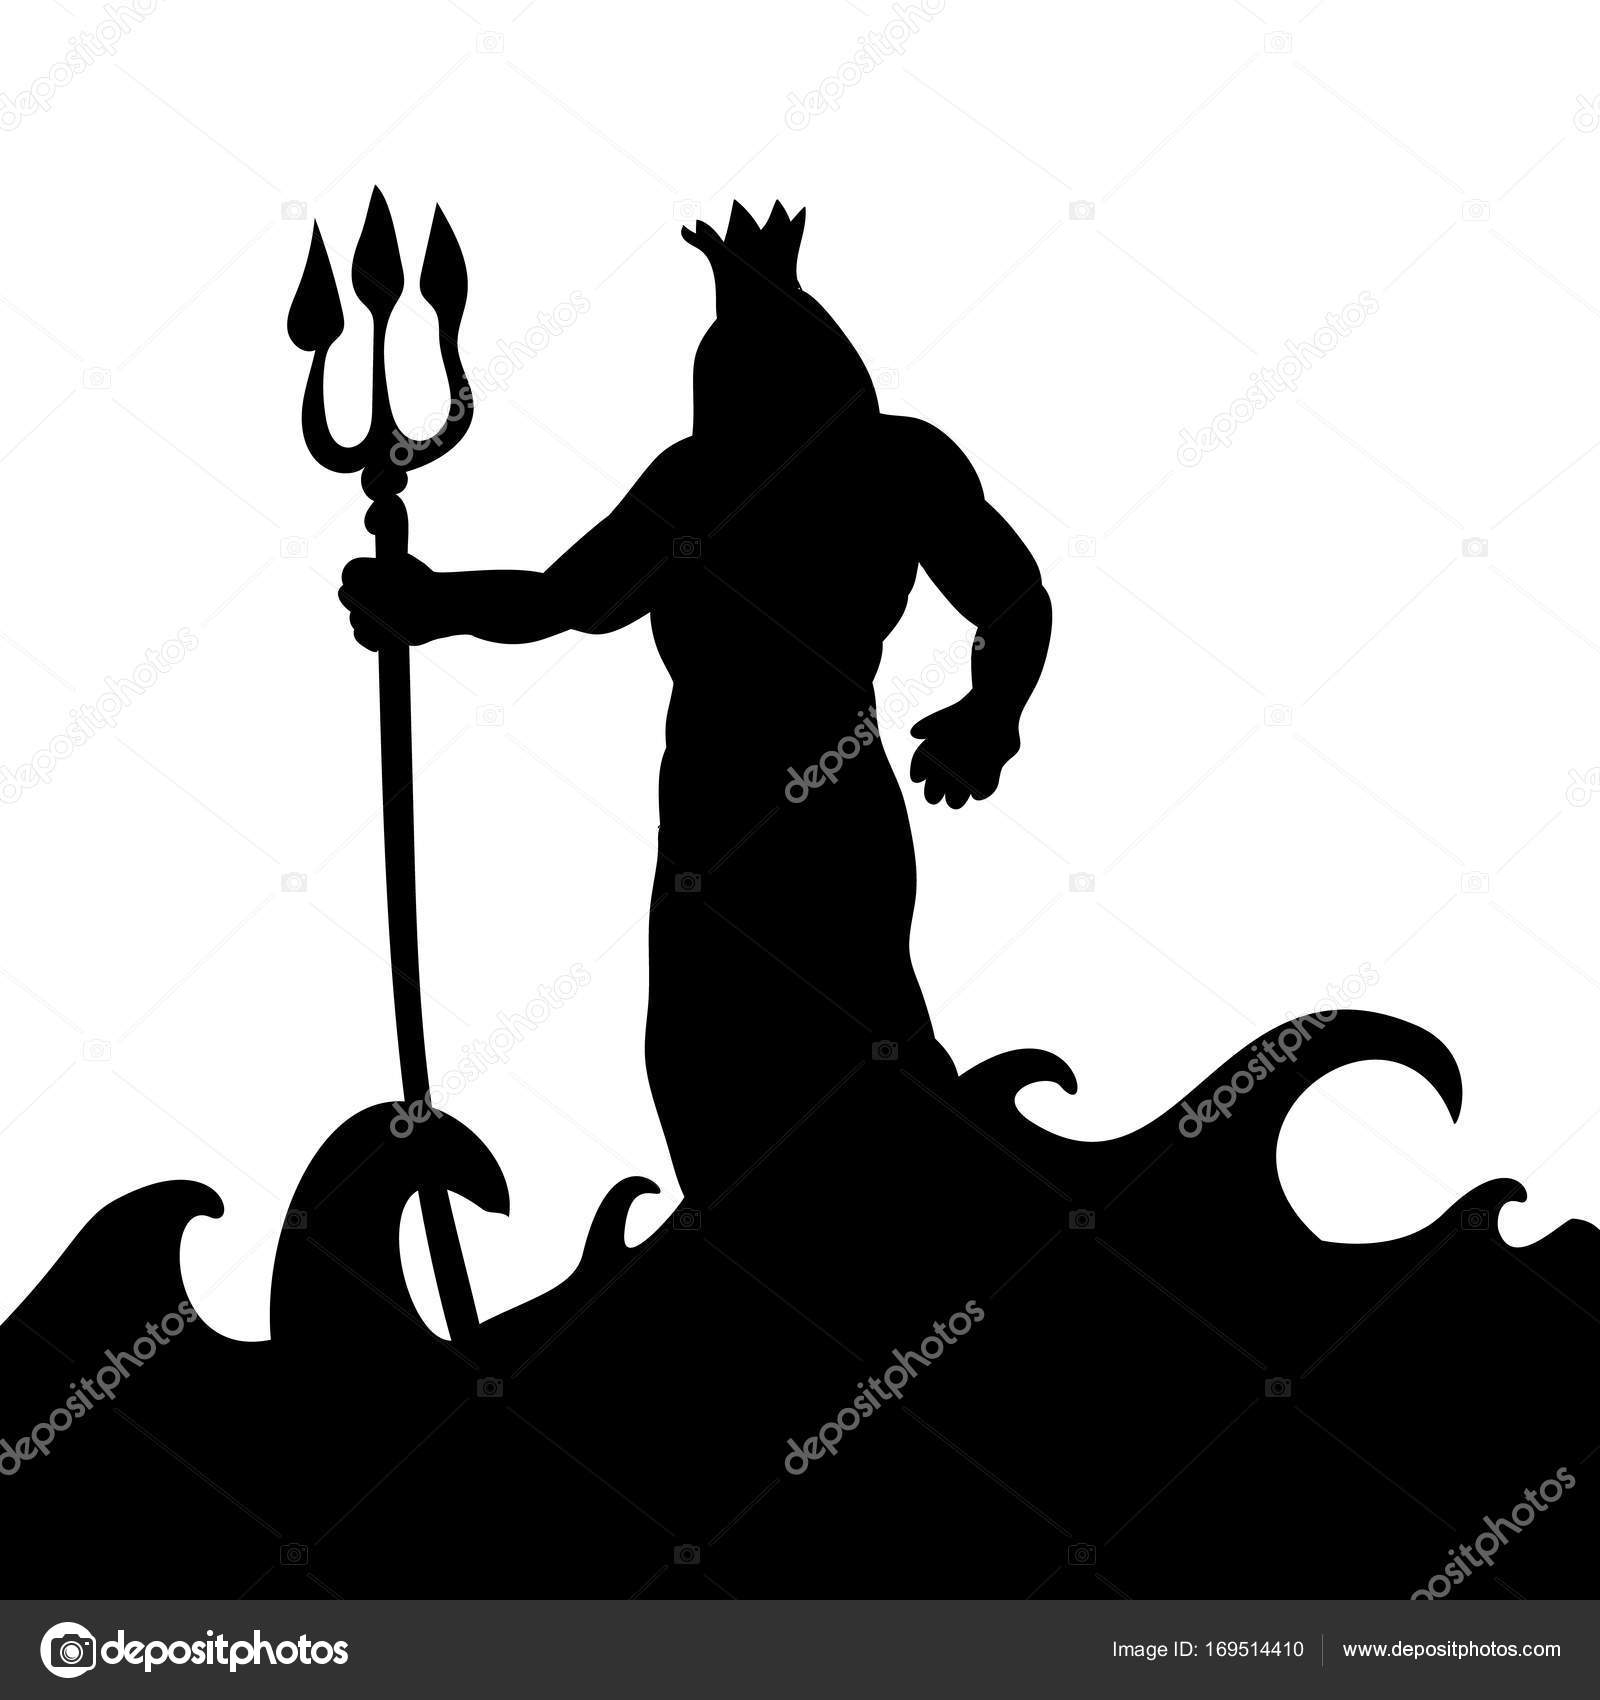 Mythical Greek Hero Stock Vectors Royalty Free Mythical Greek Hero